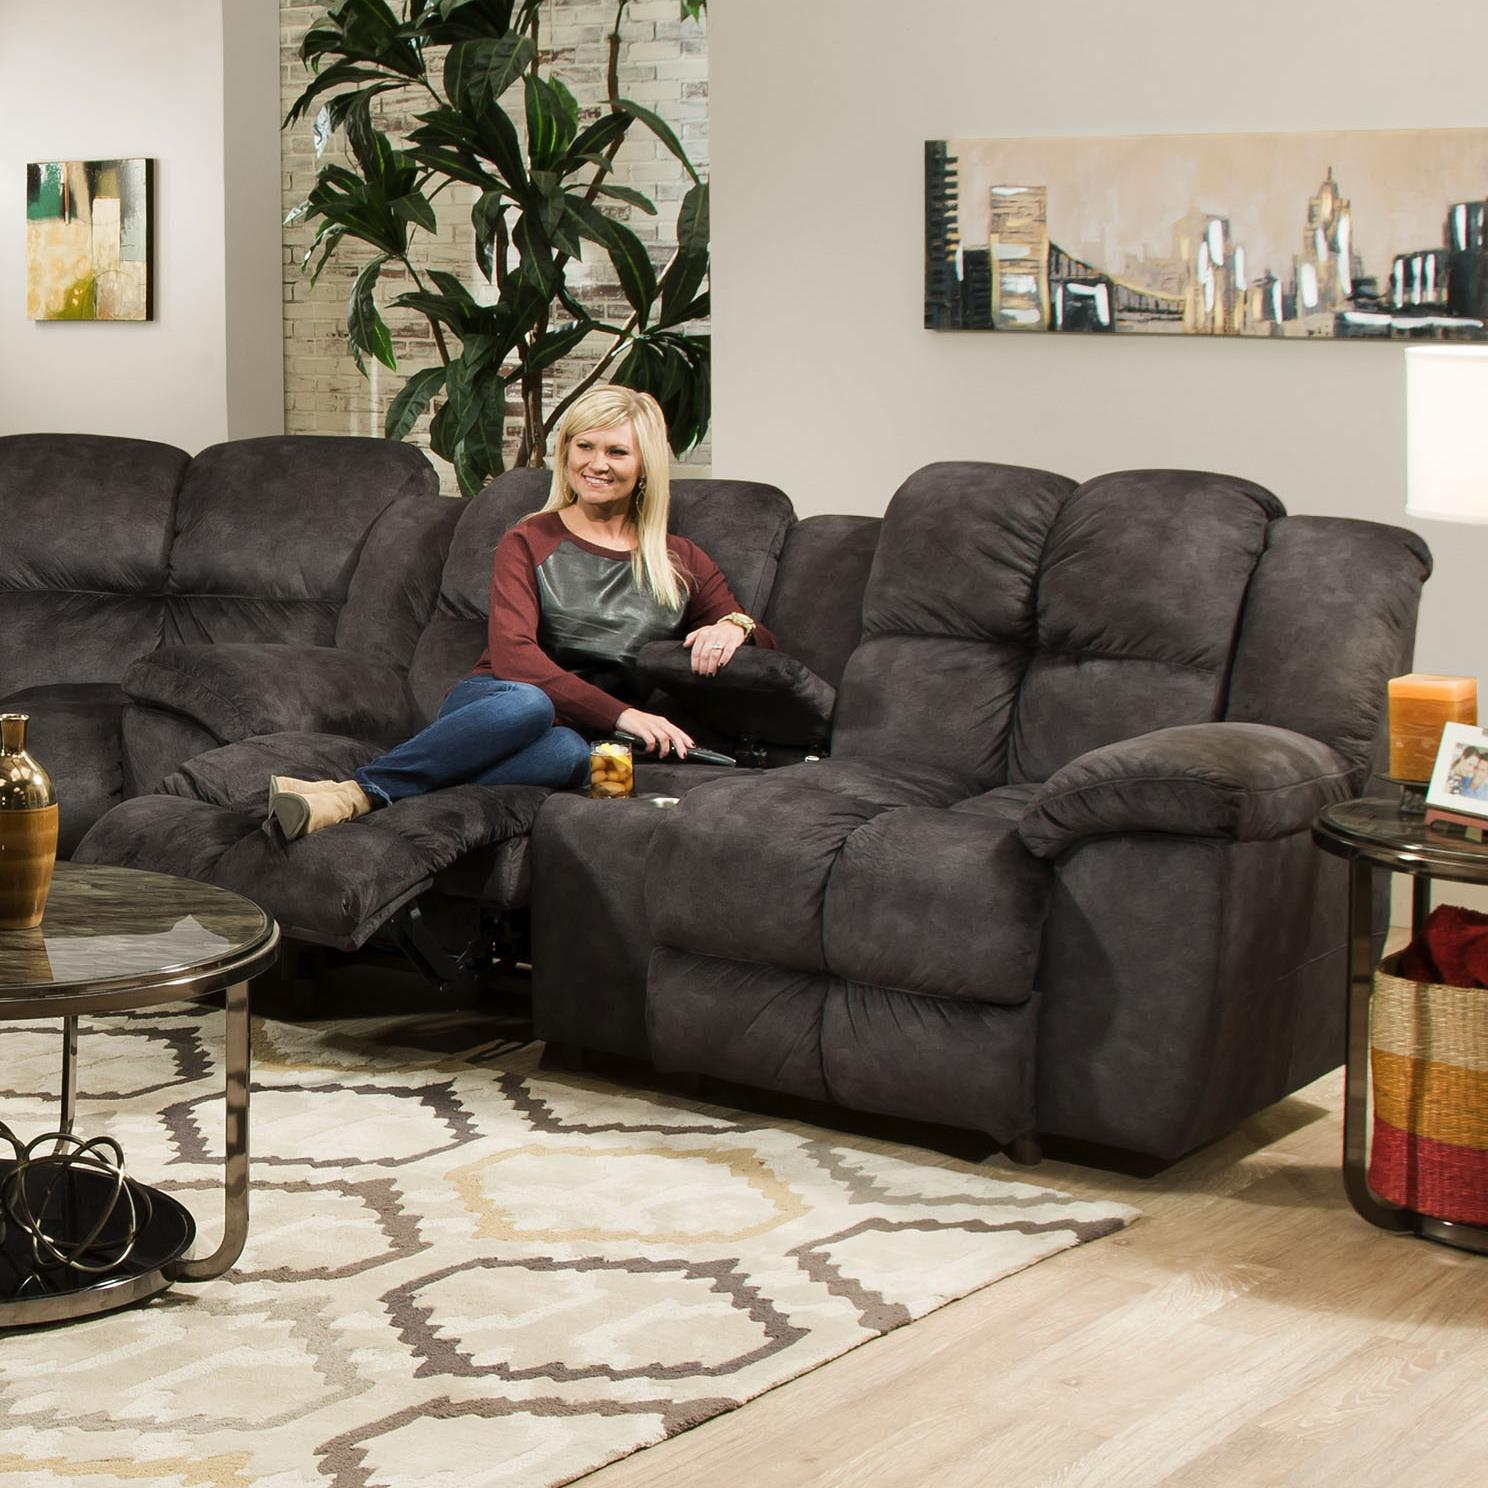 461 Reclining Console Loveseat by Franklin at Catalog Outlet